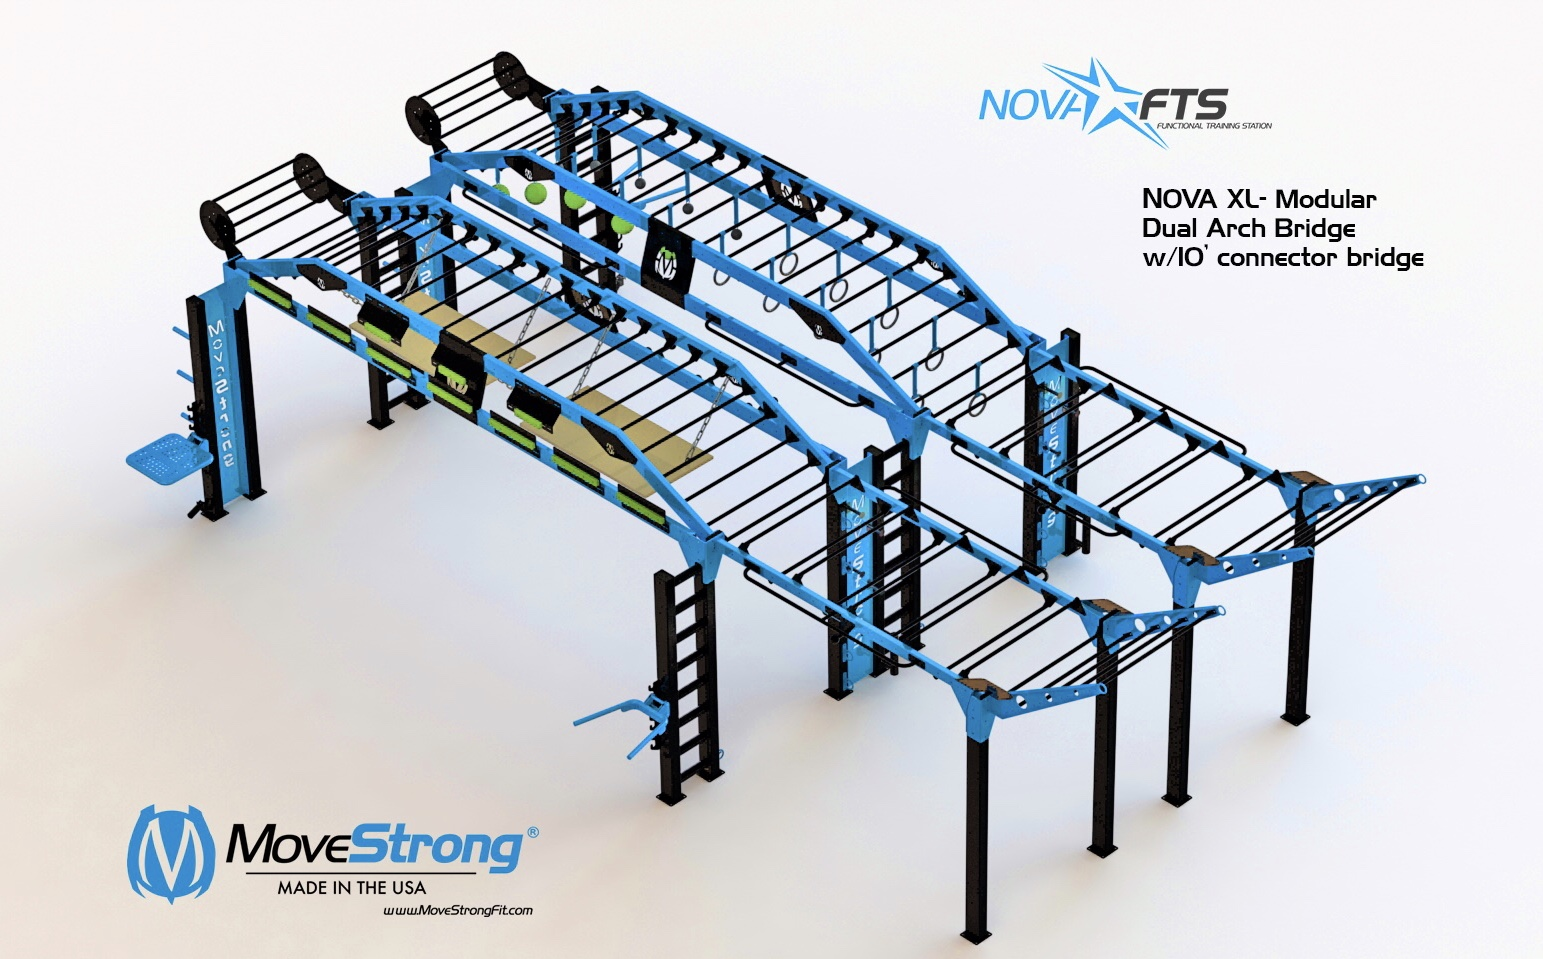 Obstacle Course and Ninja Warrior Training Rig